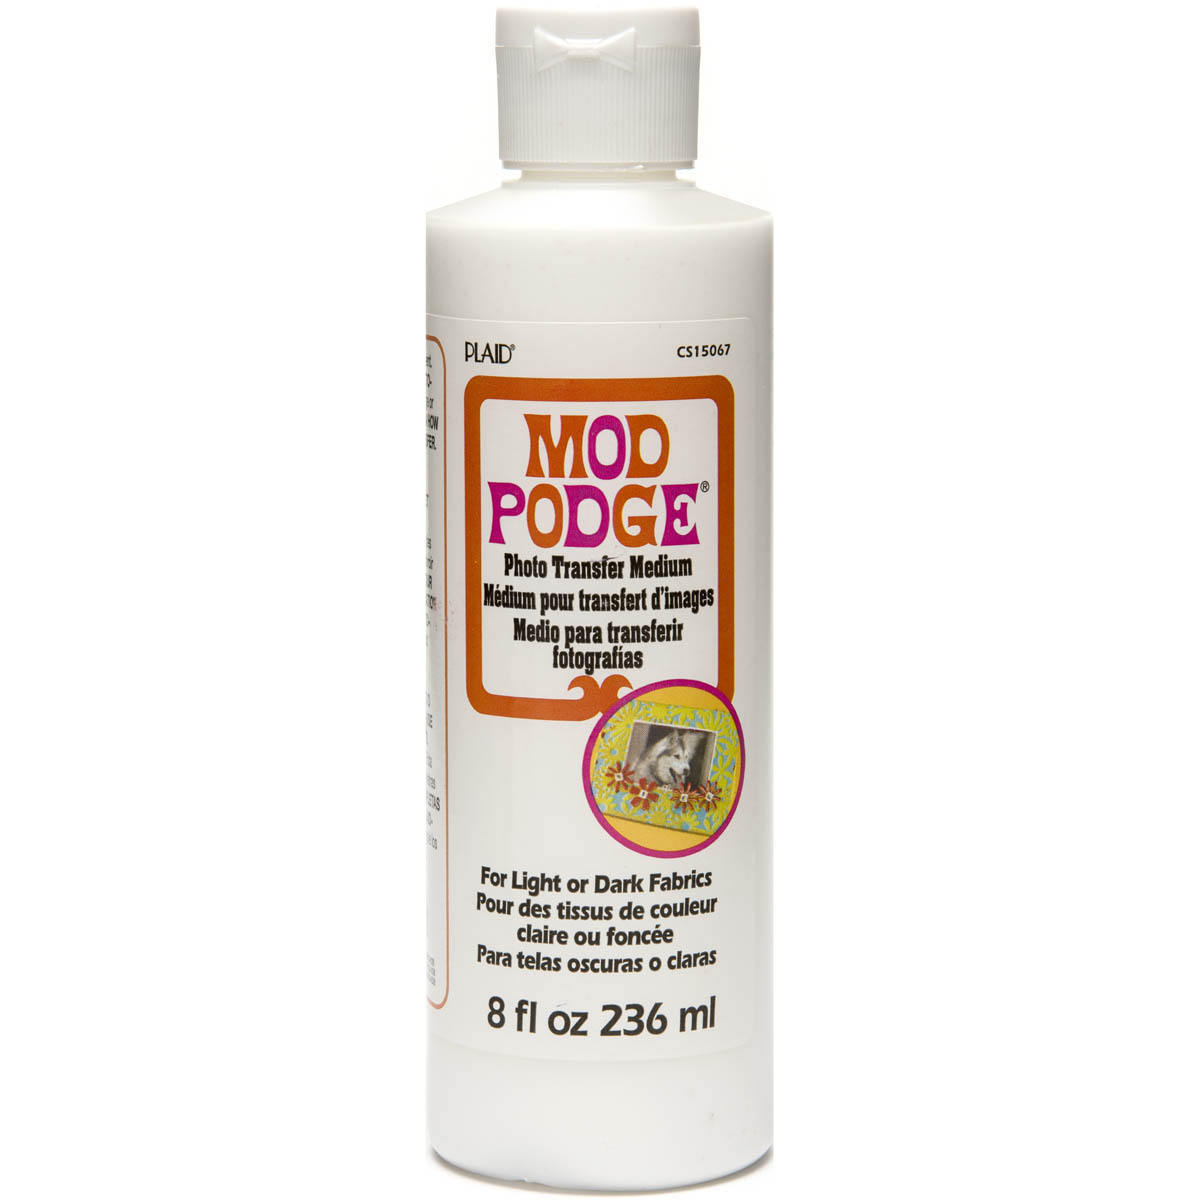 Plaid Mod Podge Photo Transfer Medium-8Oz